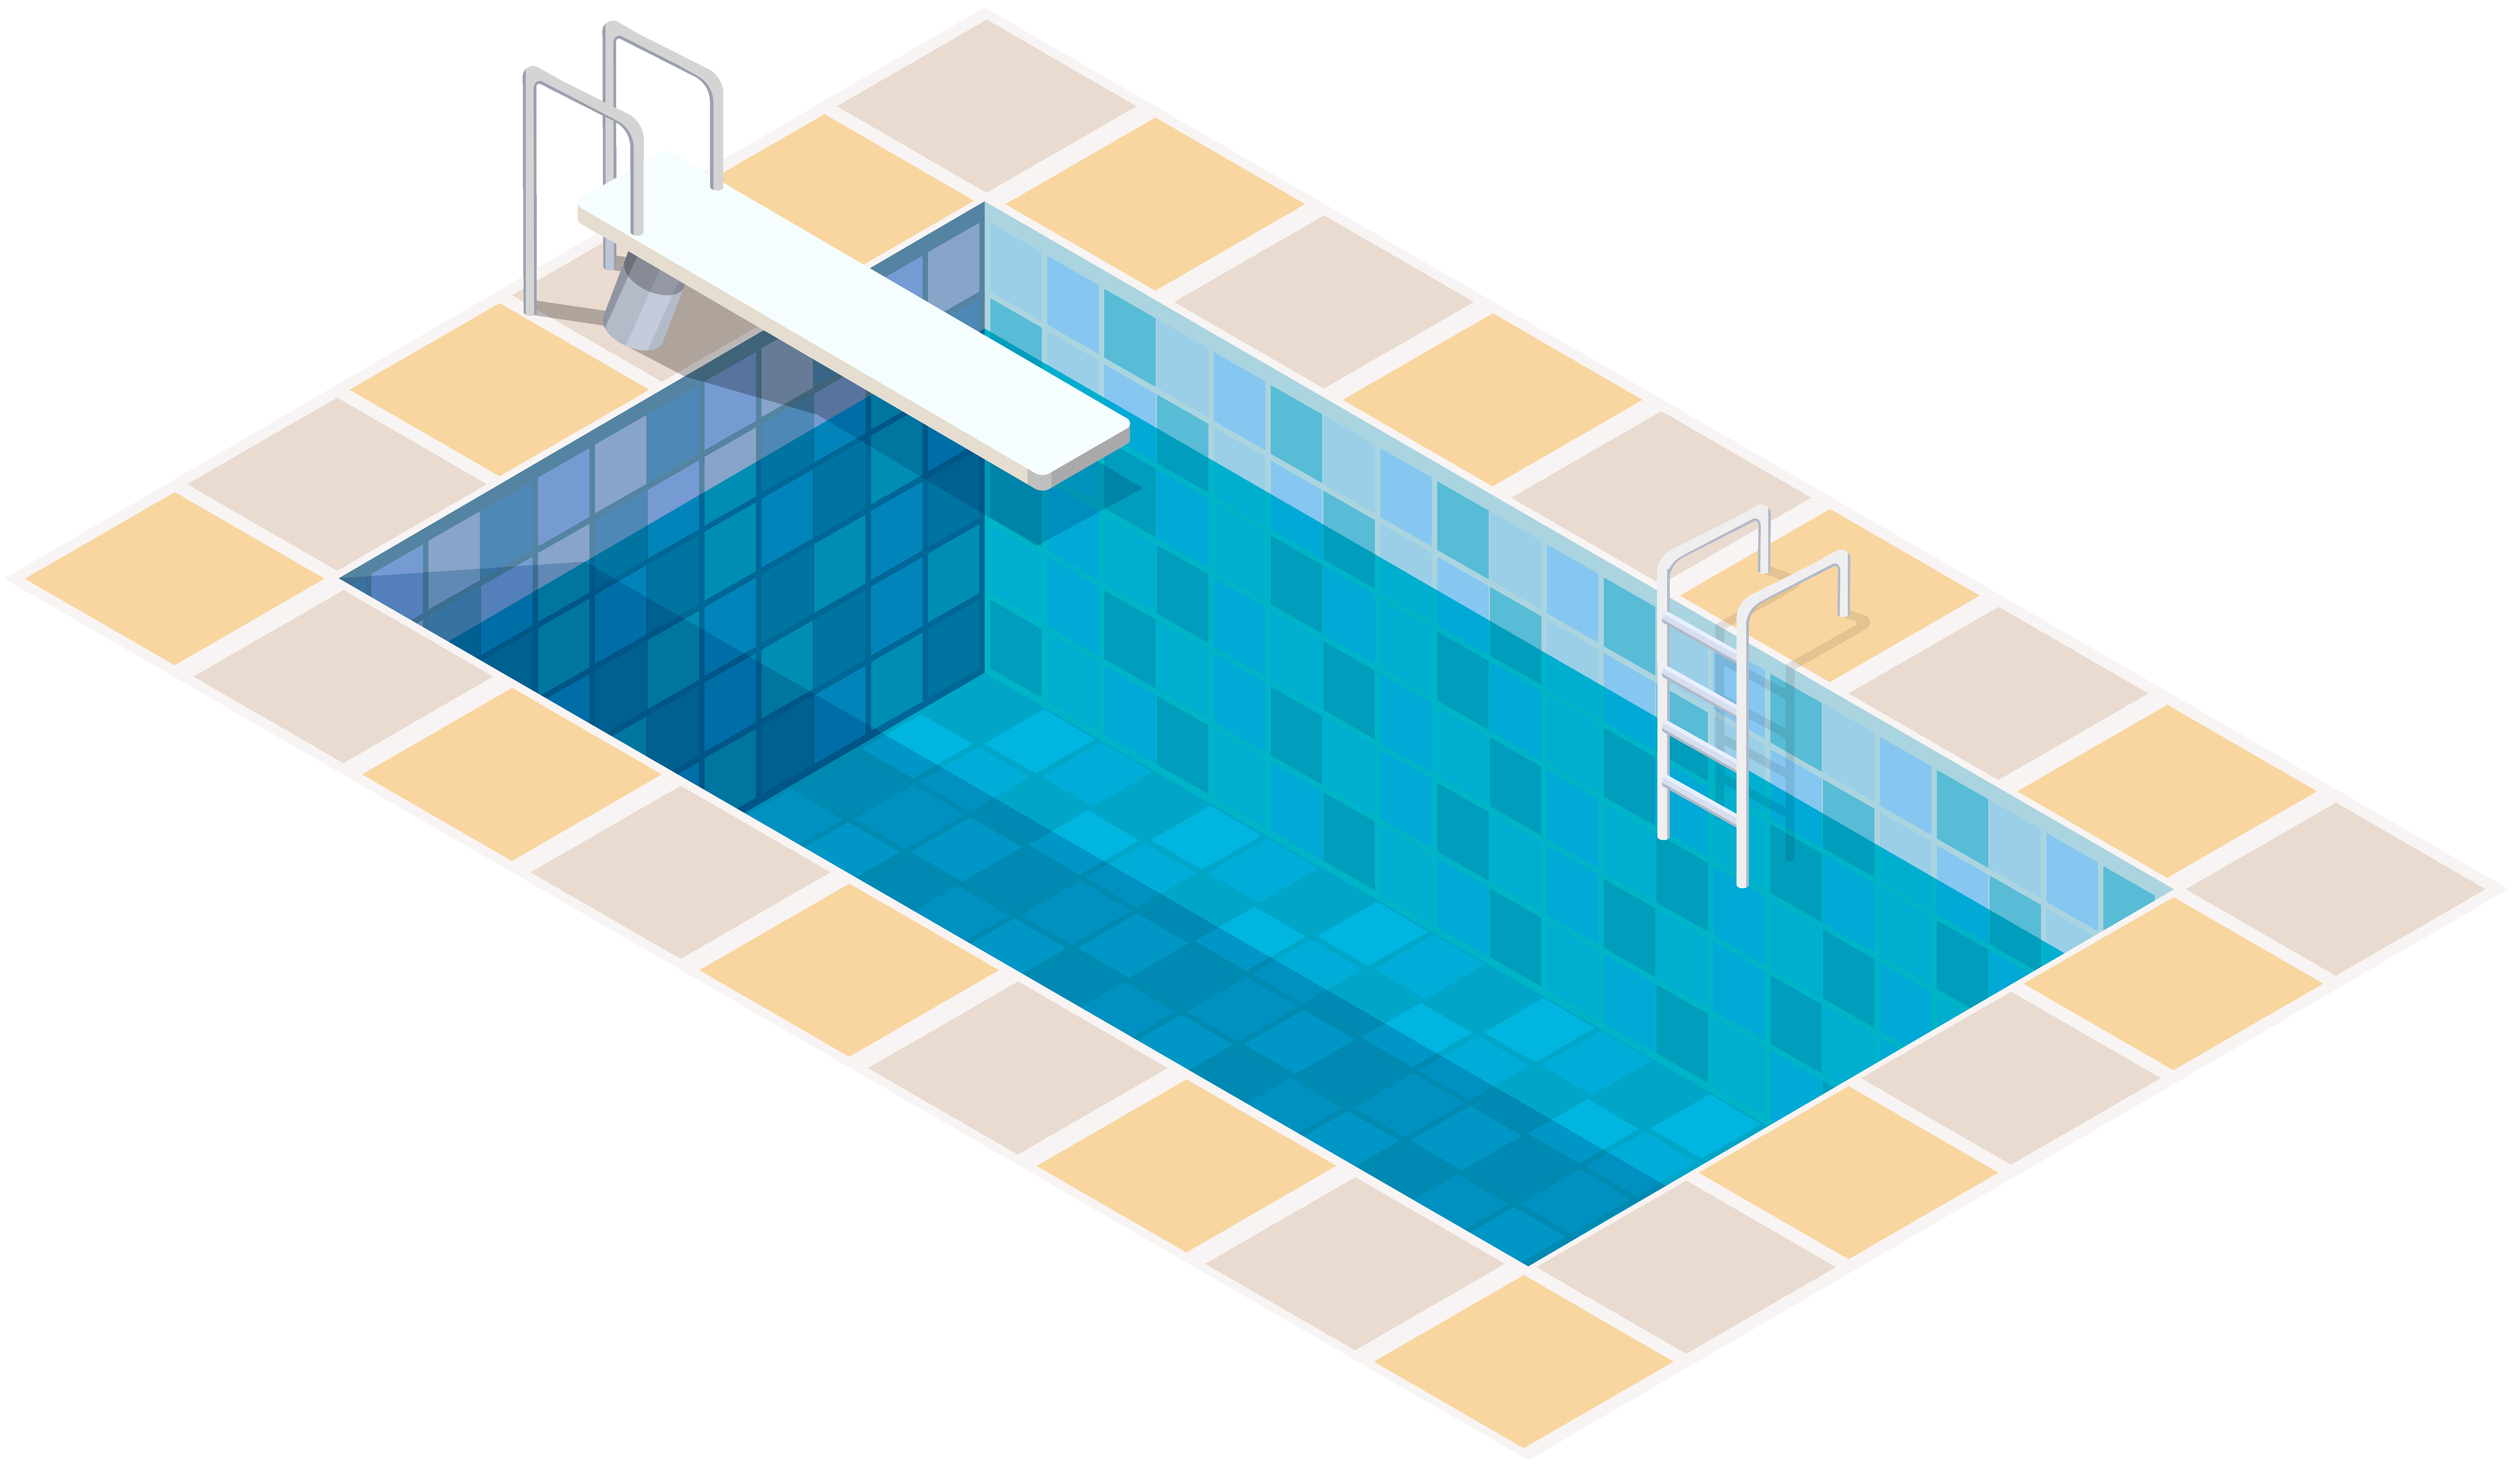 Swimming Pool Clipart at GetDrawings.com.